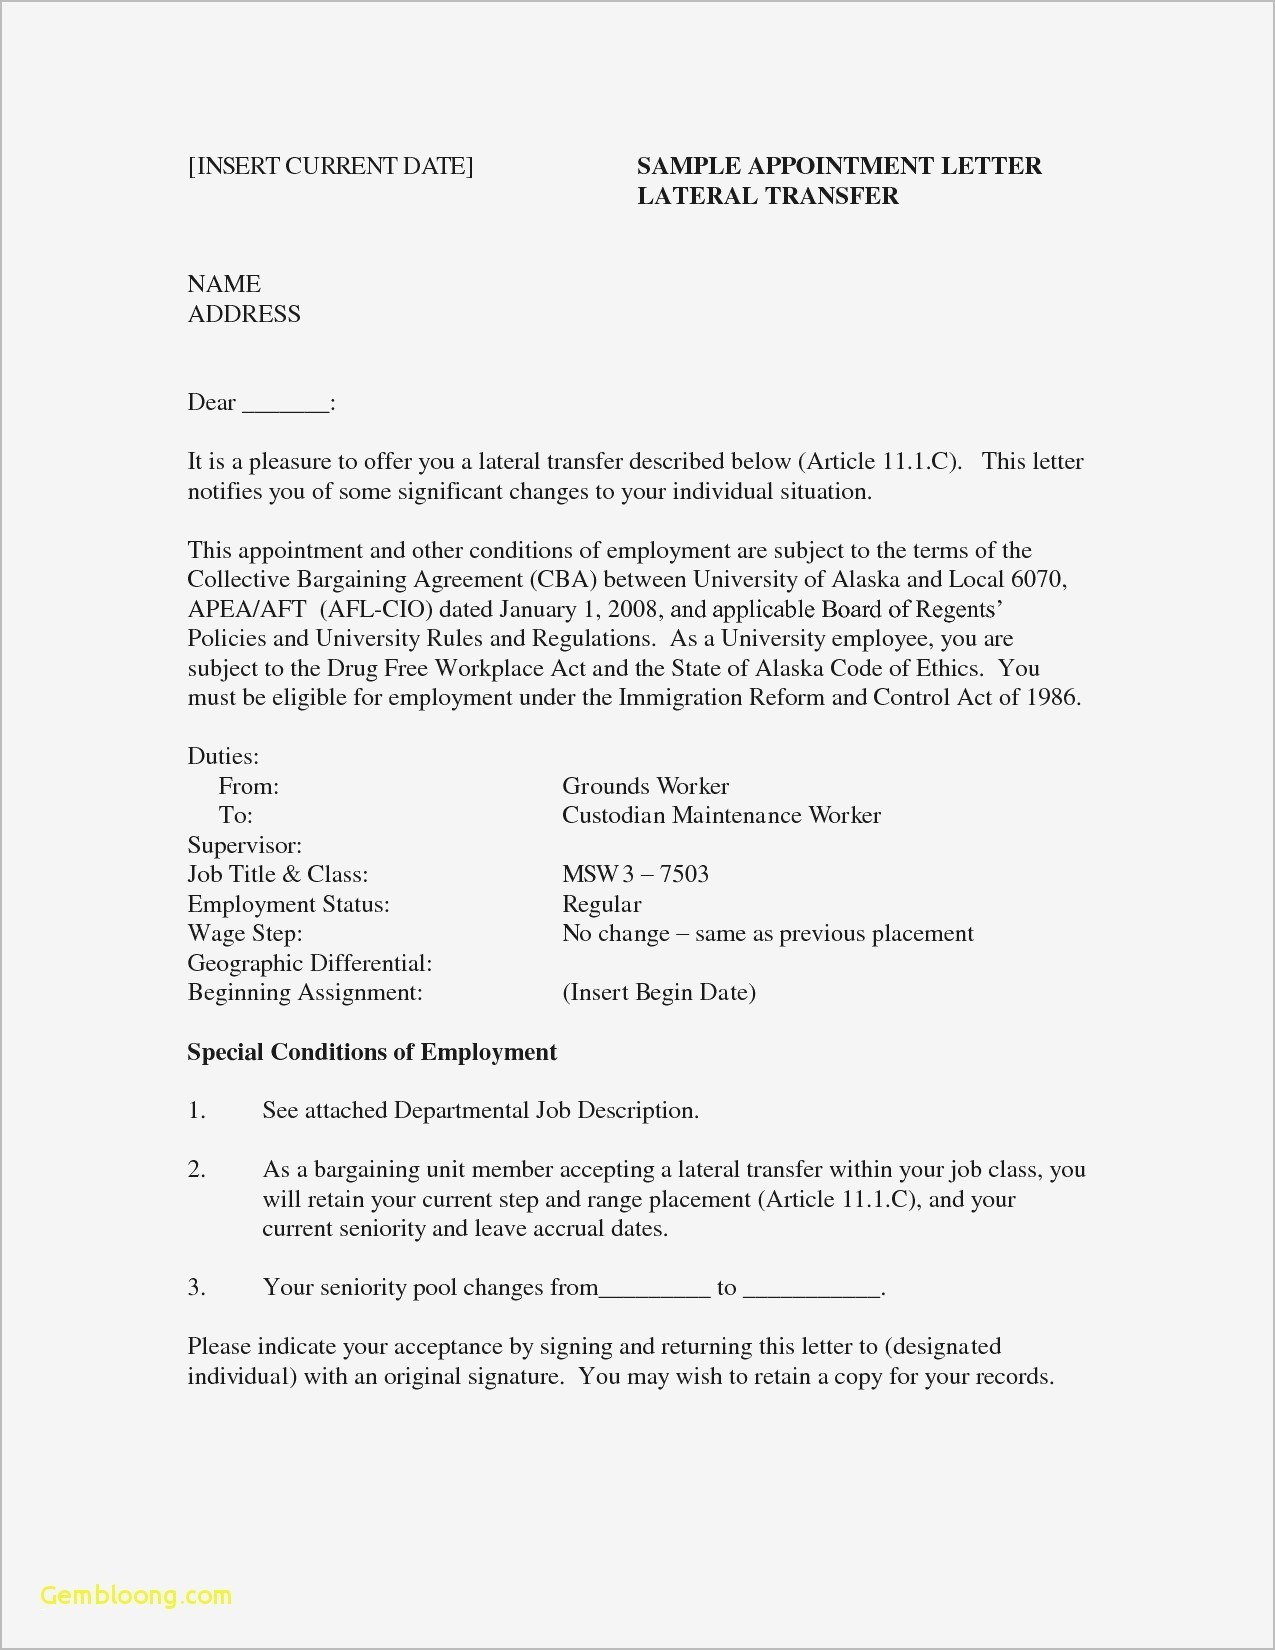 theater resume template example-Theatre resume template inspirational best actor resume unique actor resumes 0d acting resume format 12-e